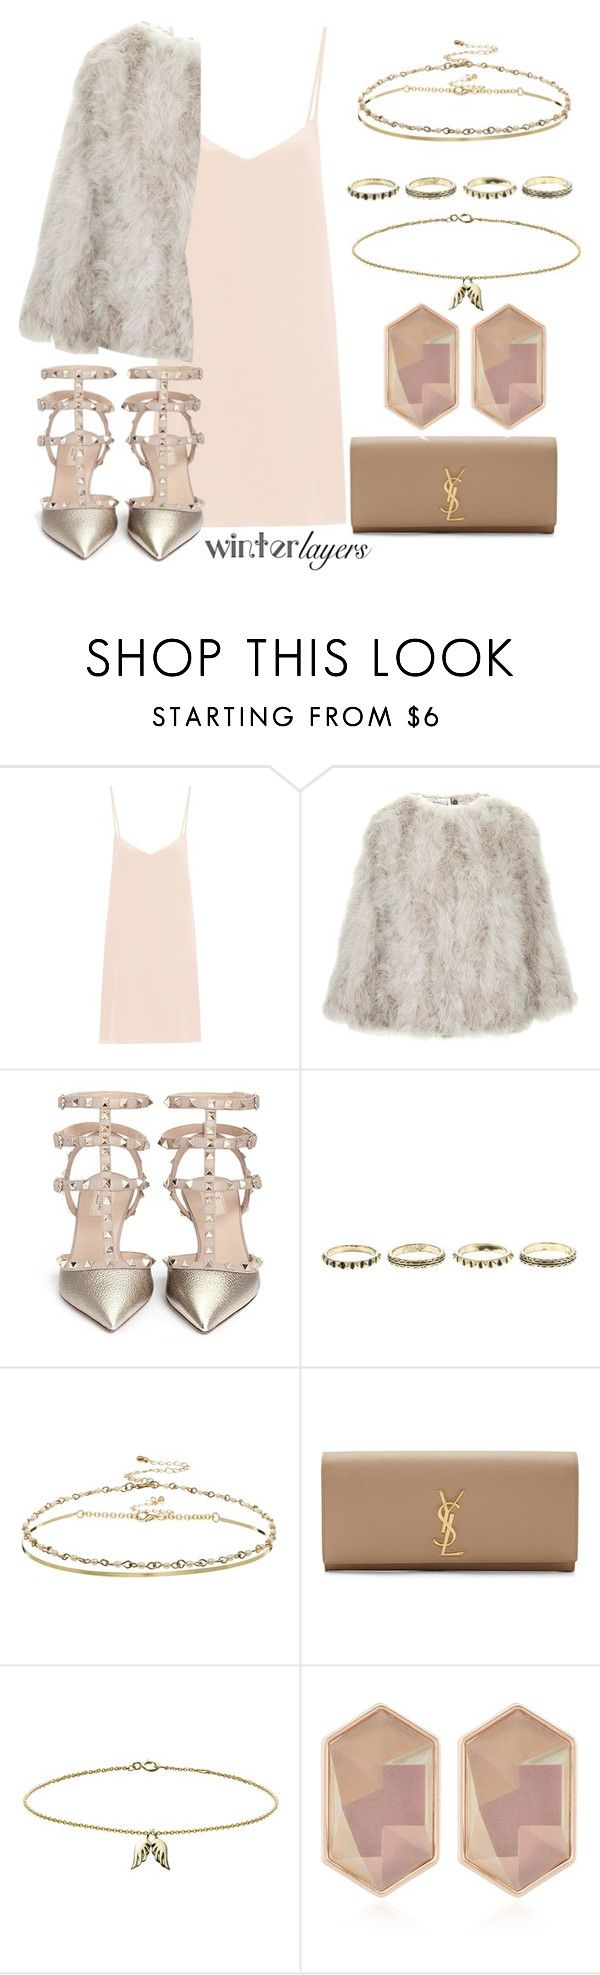 """Slip Dress"" by may-calista ❤ liked on Polyvore featuring Raey, Topshop, Valentino, ASOS, Yves Saint Laurent, Minor Obsessions, Nocturne, women's clothing, women's fashion and women"